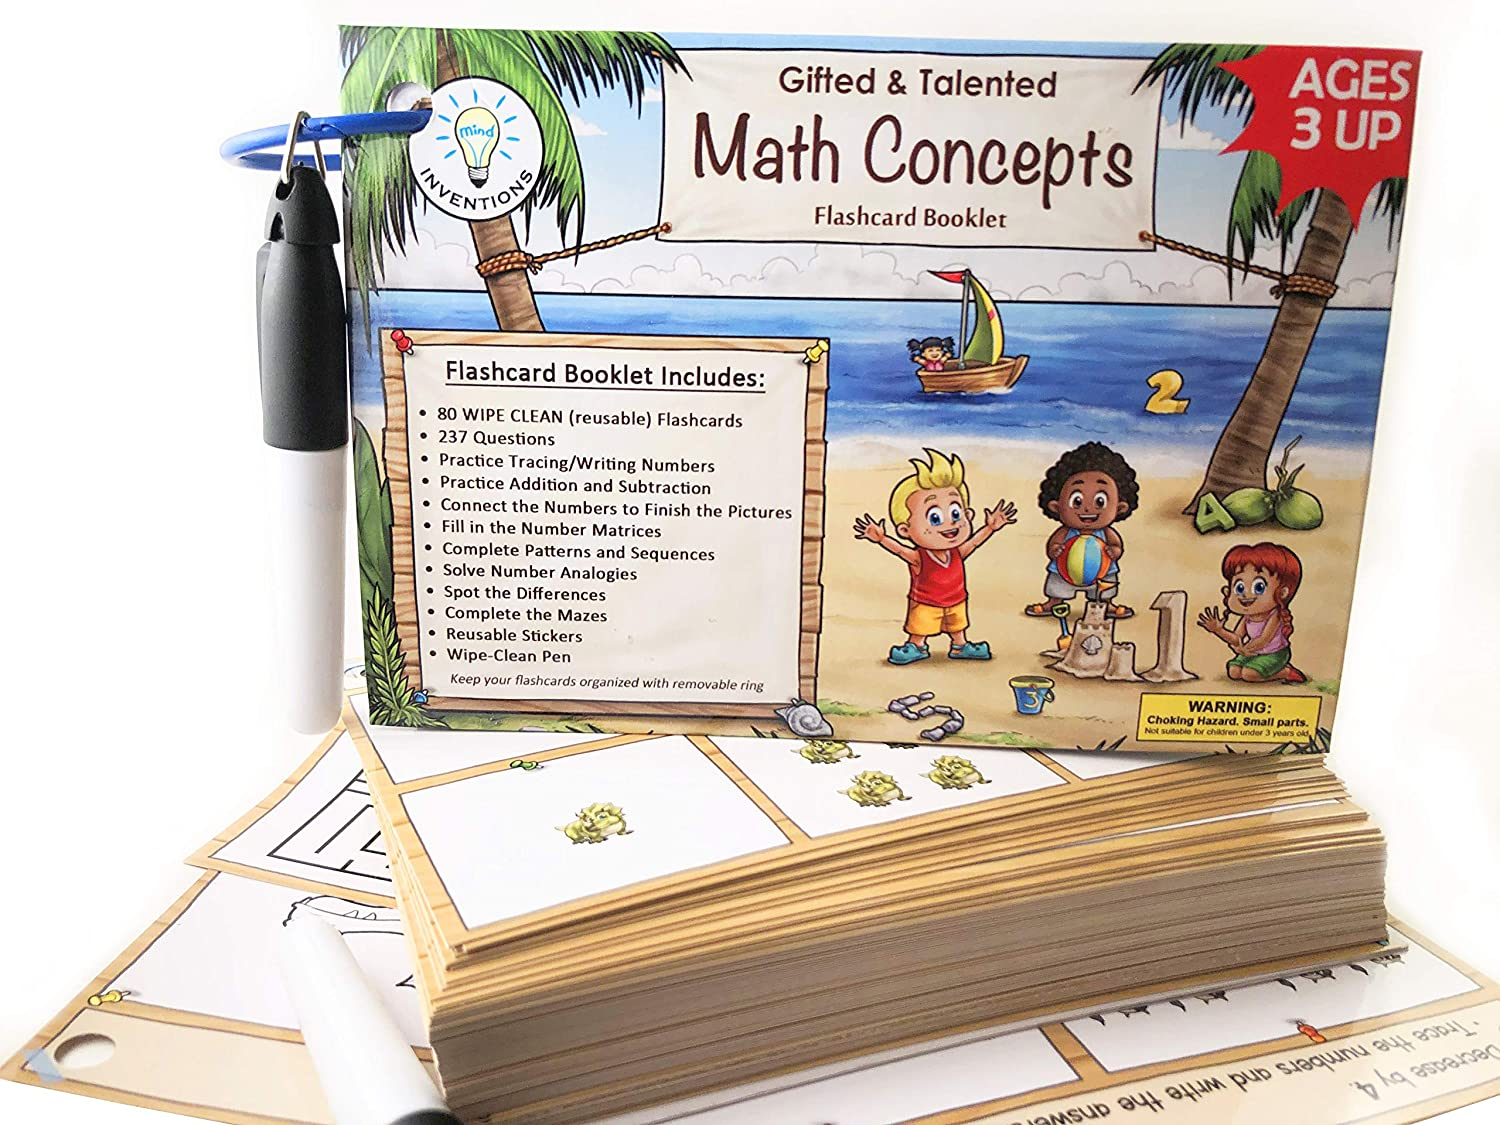 Gifted and Talented Math Flashcards (Wipe Clean) - Essential Math Concepts